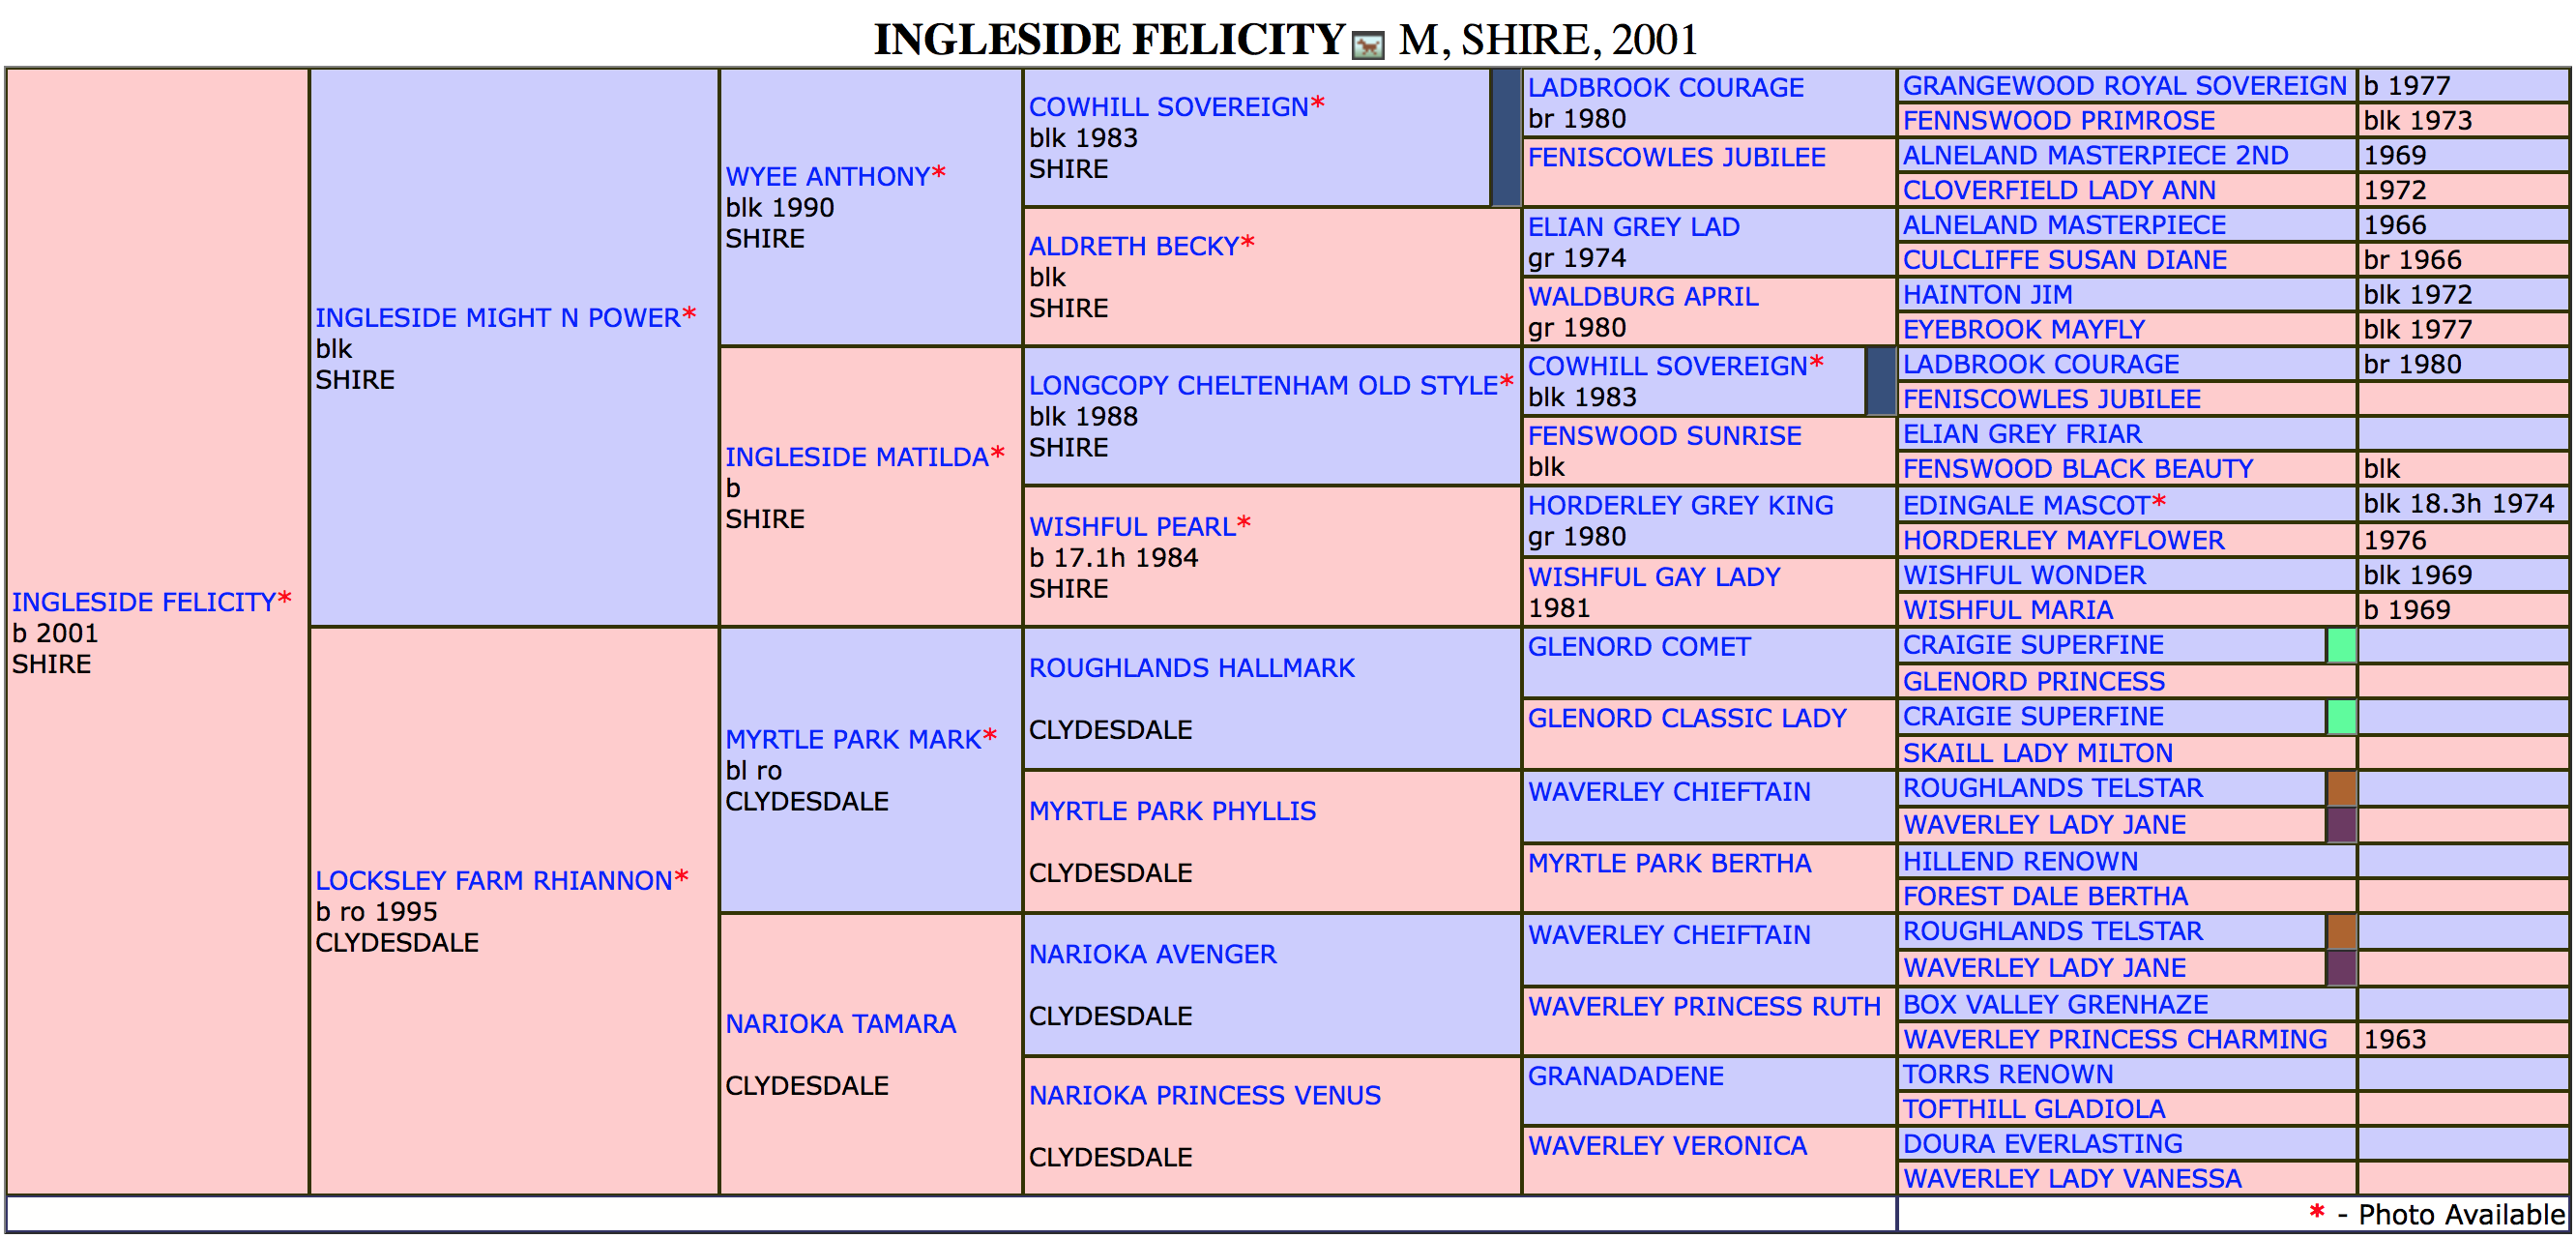 Ingleside Felicity Pedigree